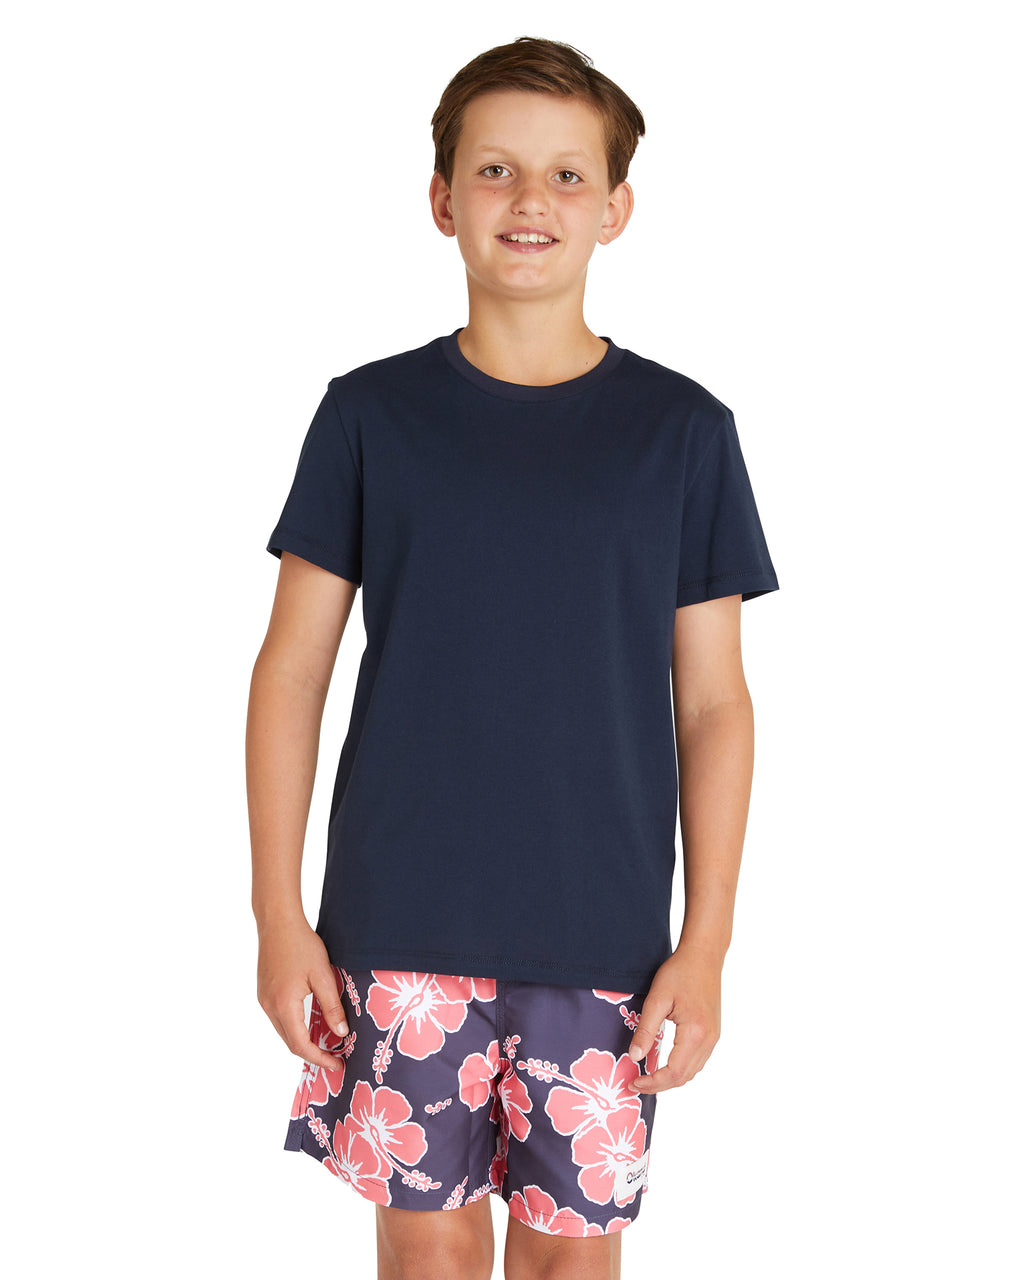 Kids T's - Sailor - Navy